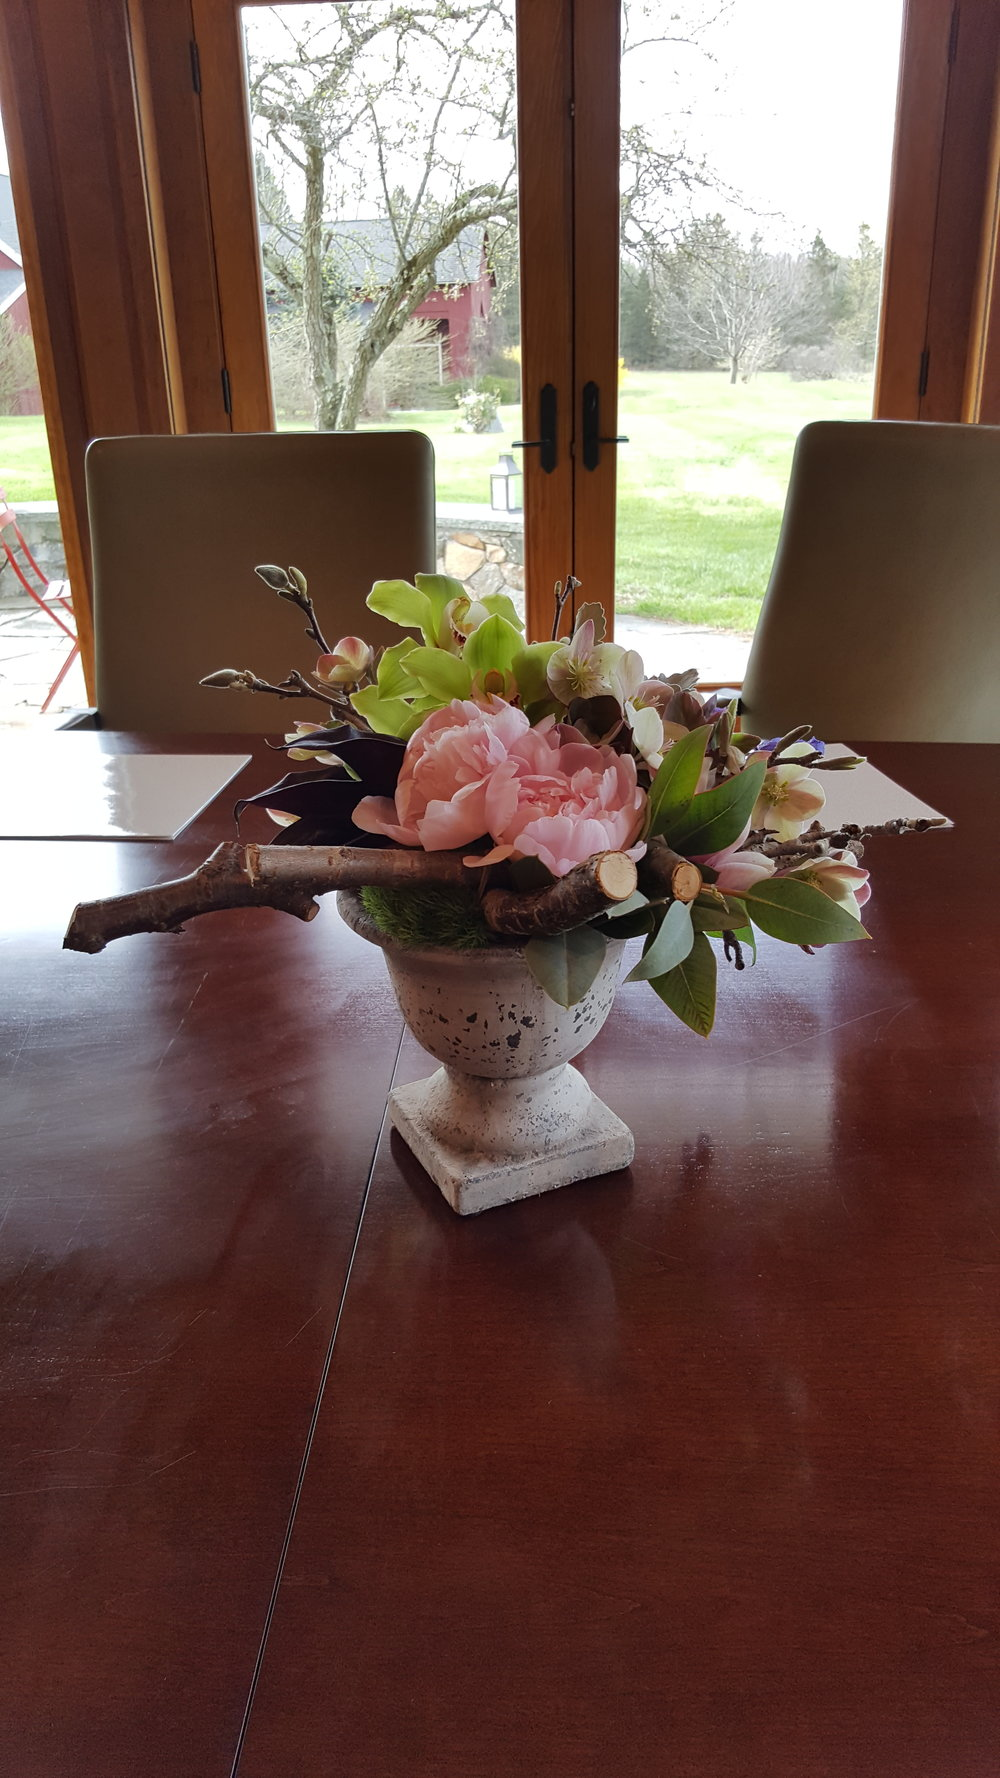 Conference table flower arrangements made by Bouquets & Beyond